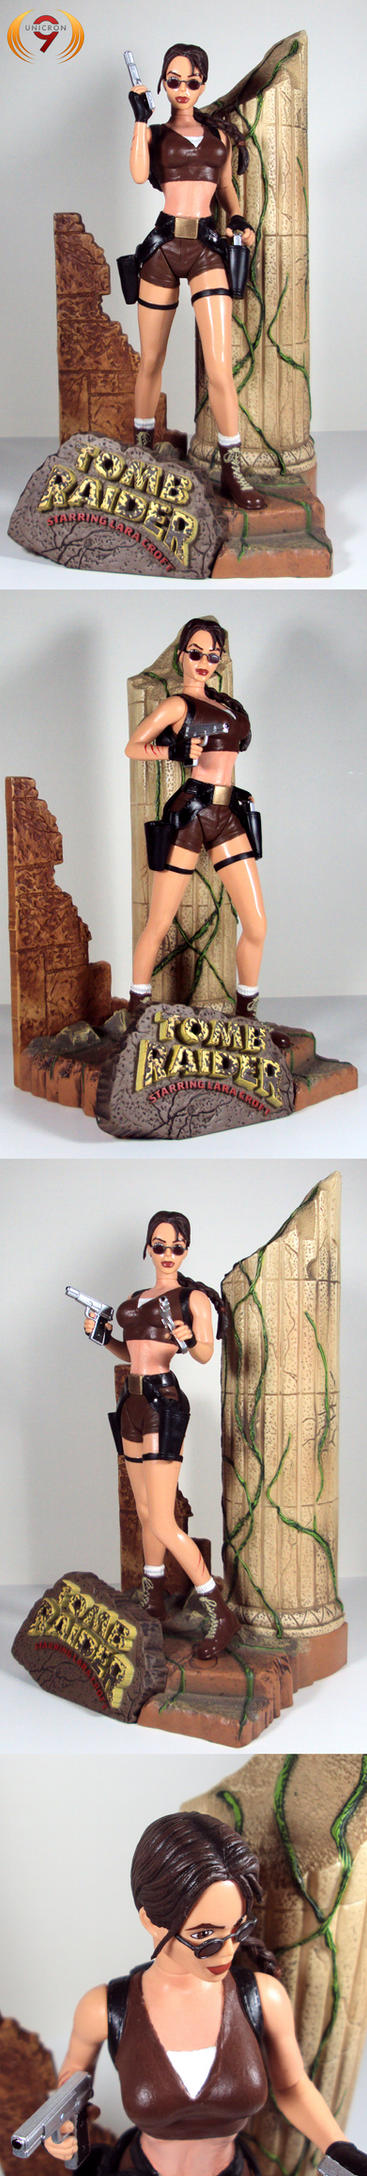 Lara croft tied nackt photo